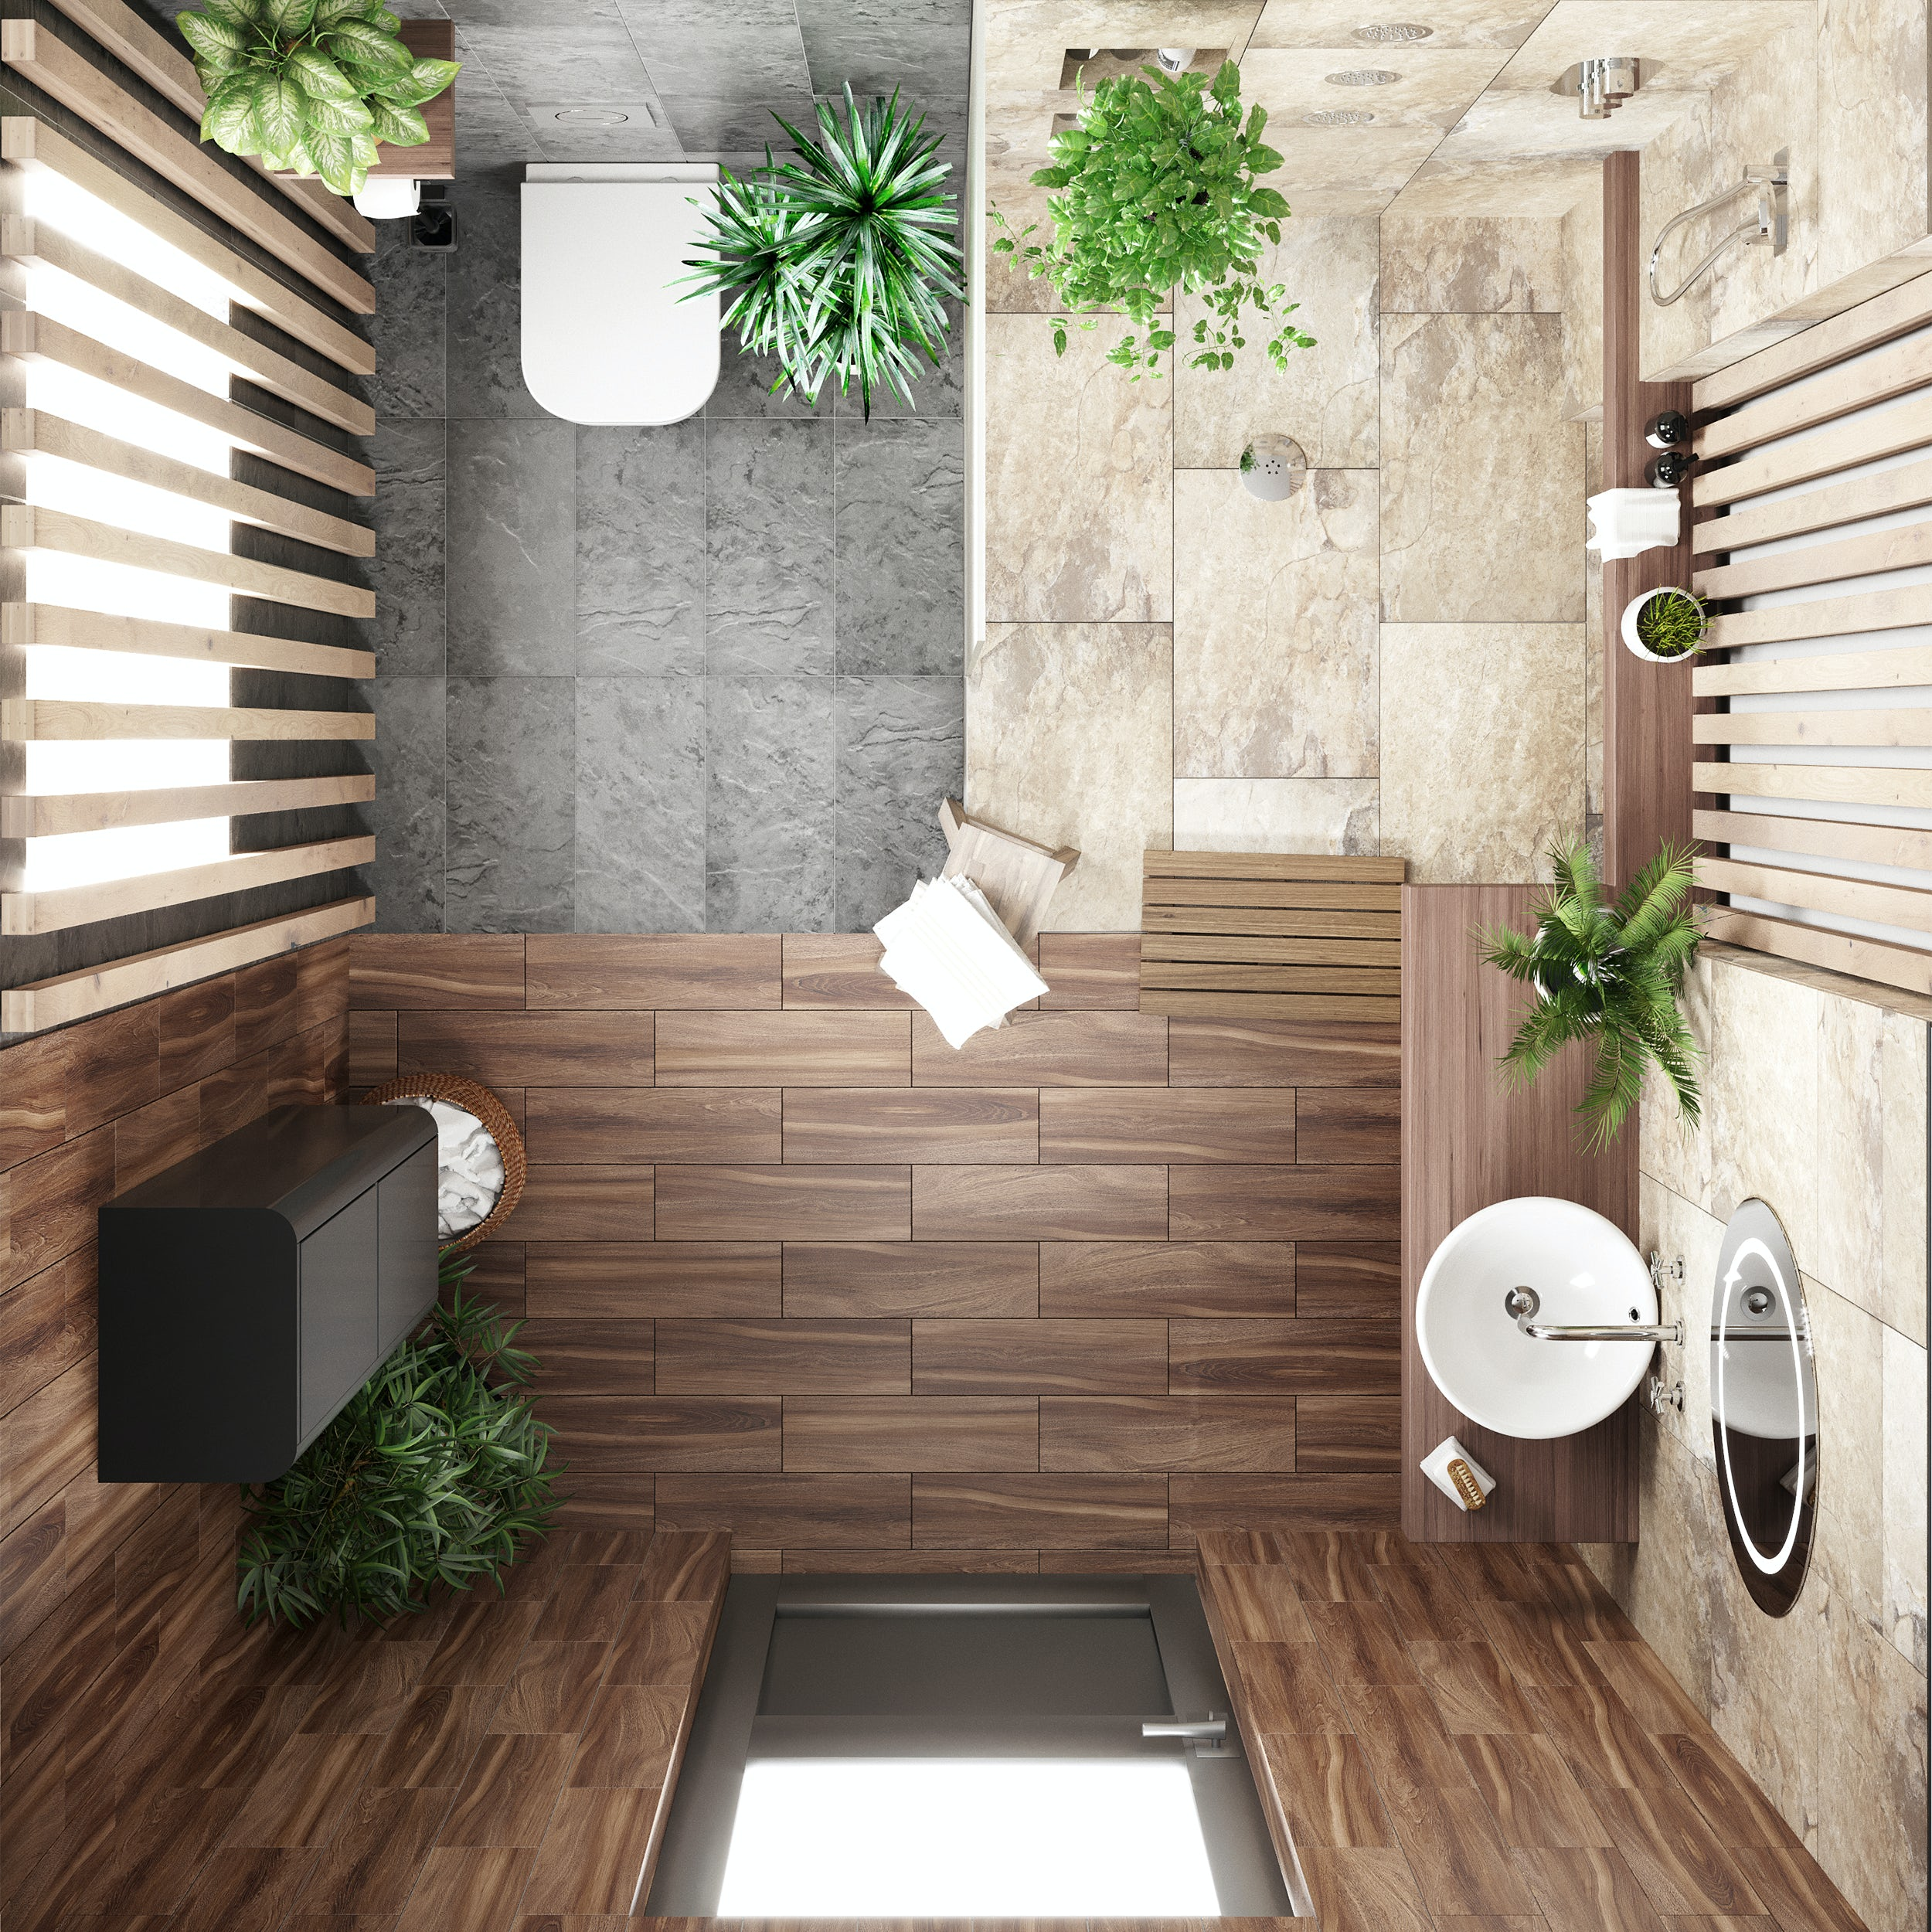 Wet room in a small bathroom